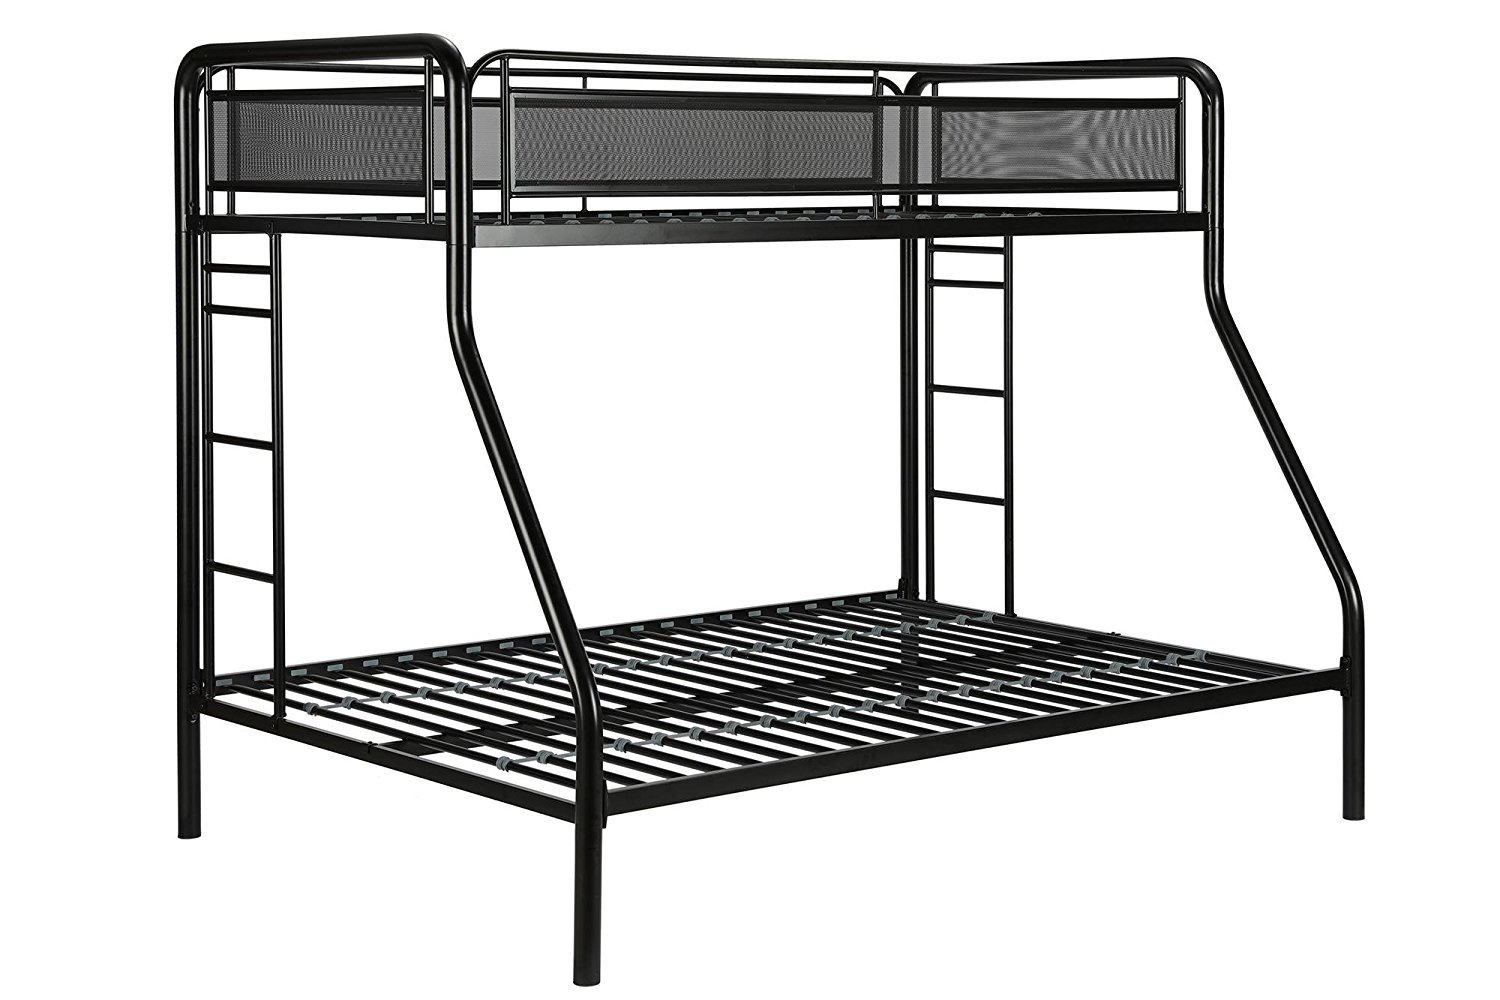 Metal Bunk Bed, Twin-Over-Full, Black Finished, Bedroom Furniture, Metal Slats, Modern Design, Metal Mesh Panels, Bundle with Expert Guide ''Happiness, Health and Better Life''